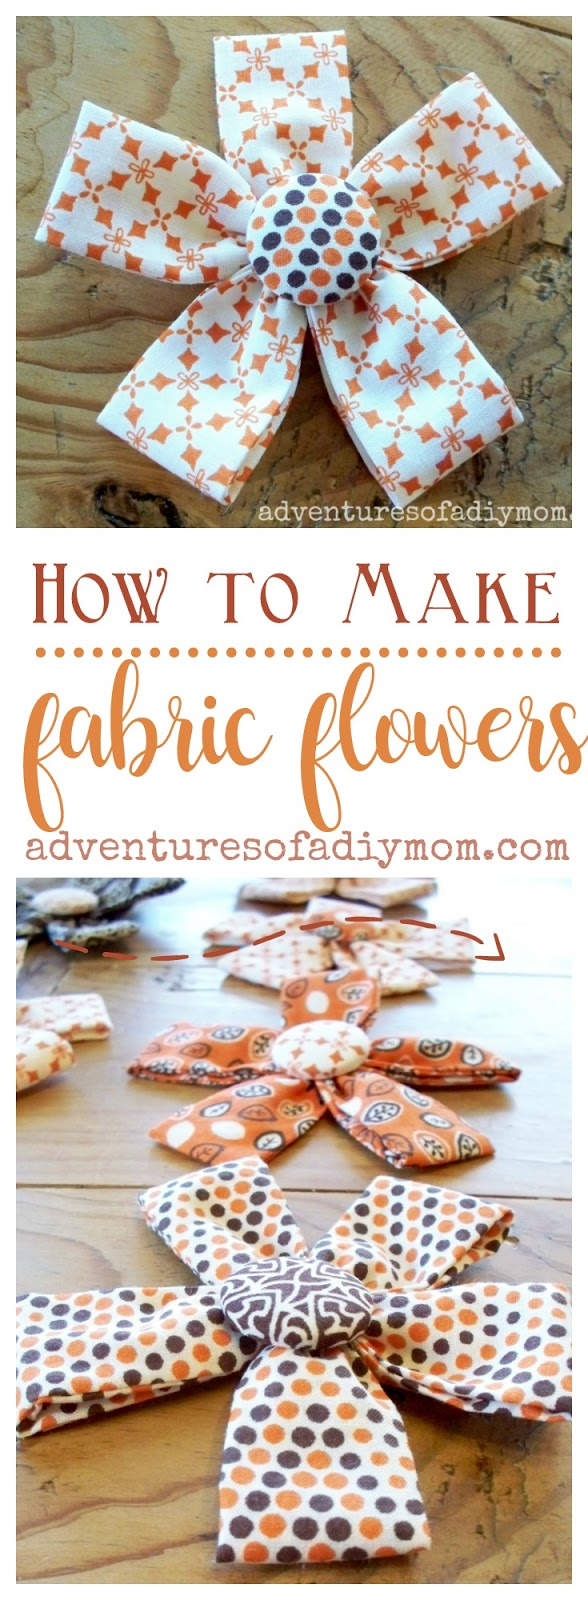 how to make dabric fliwers